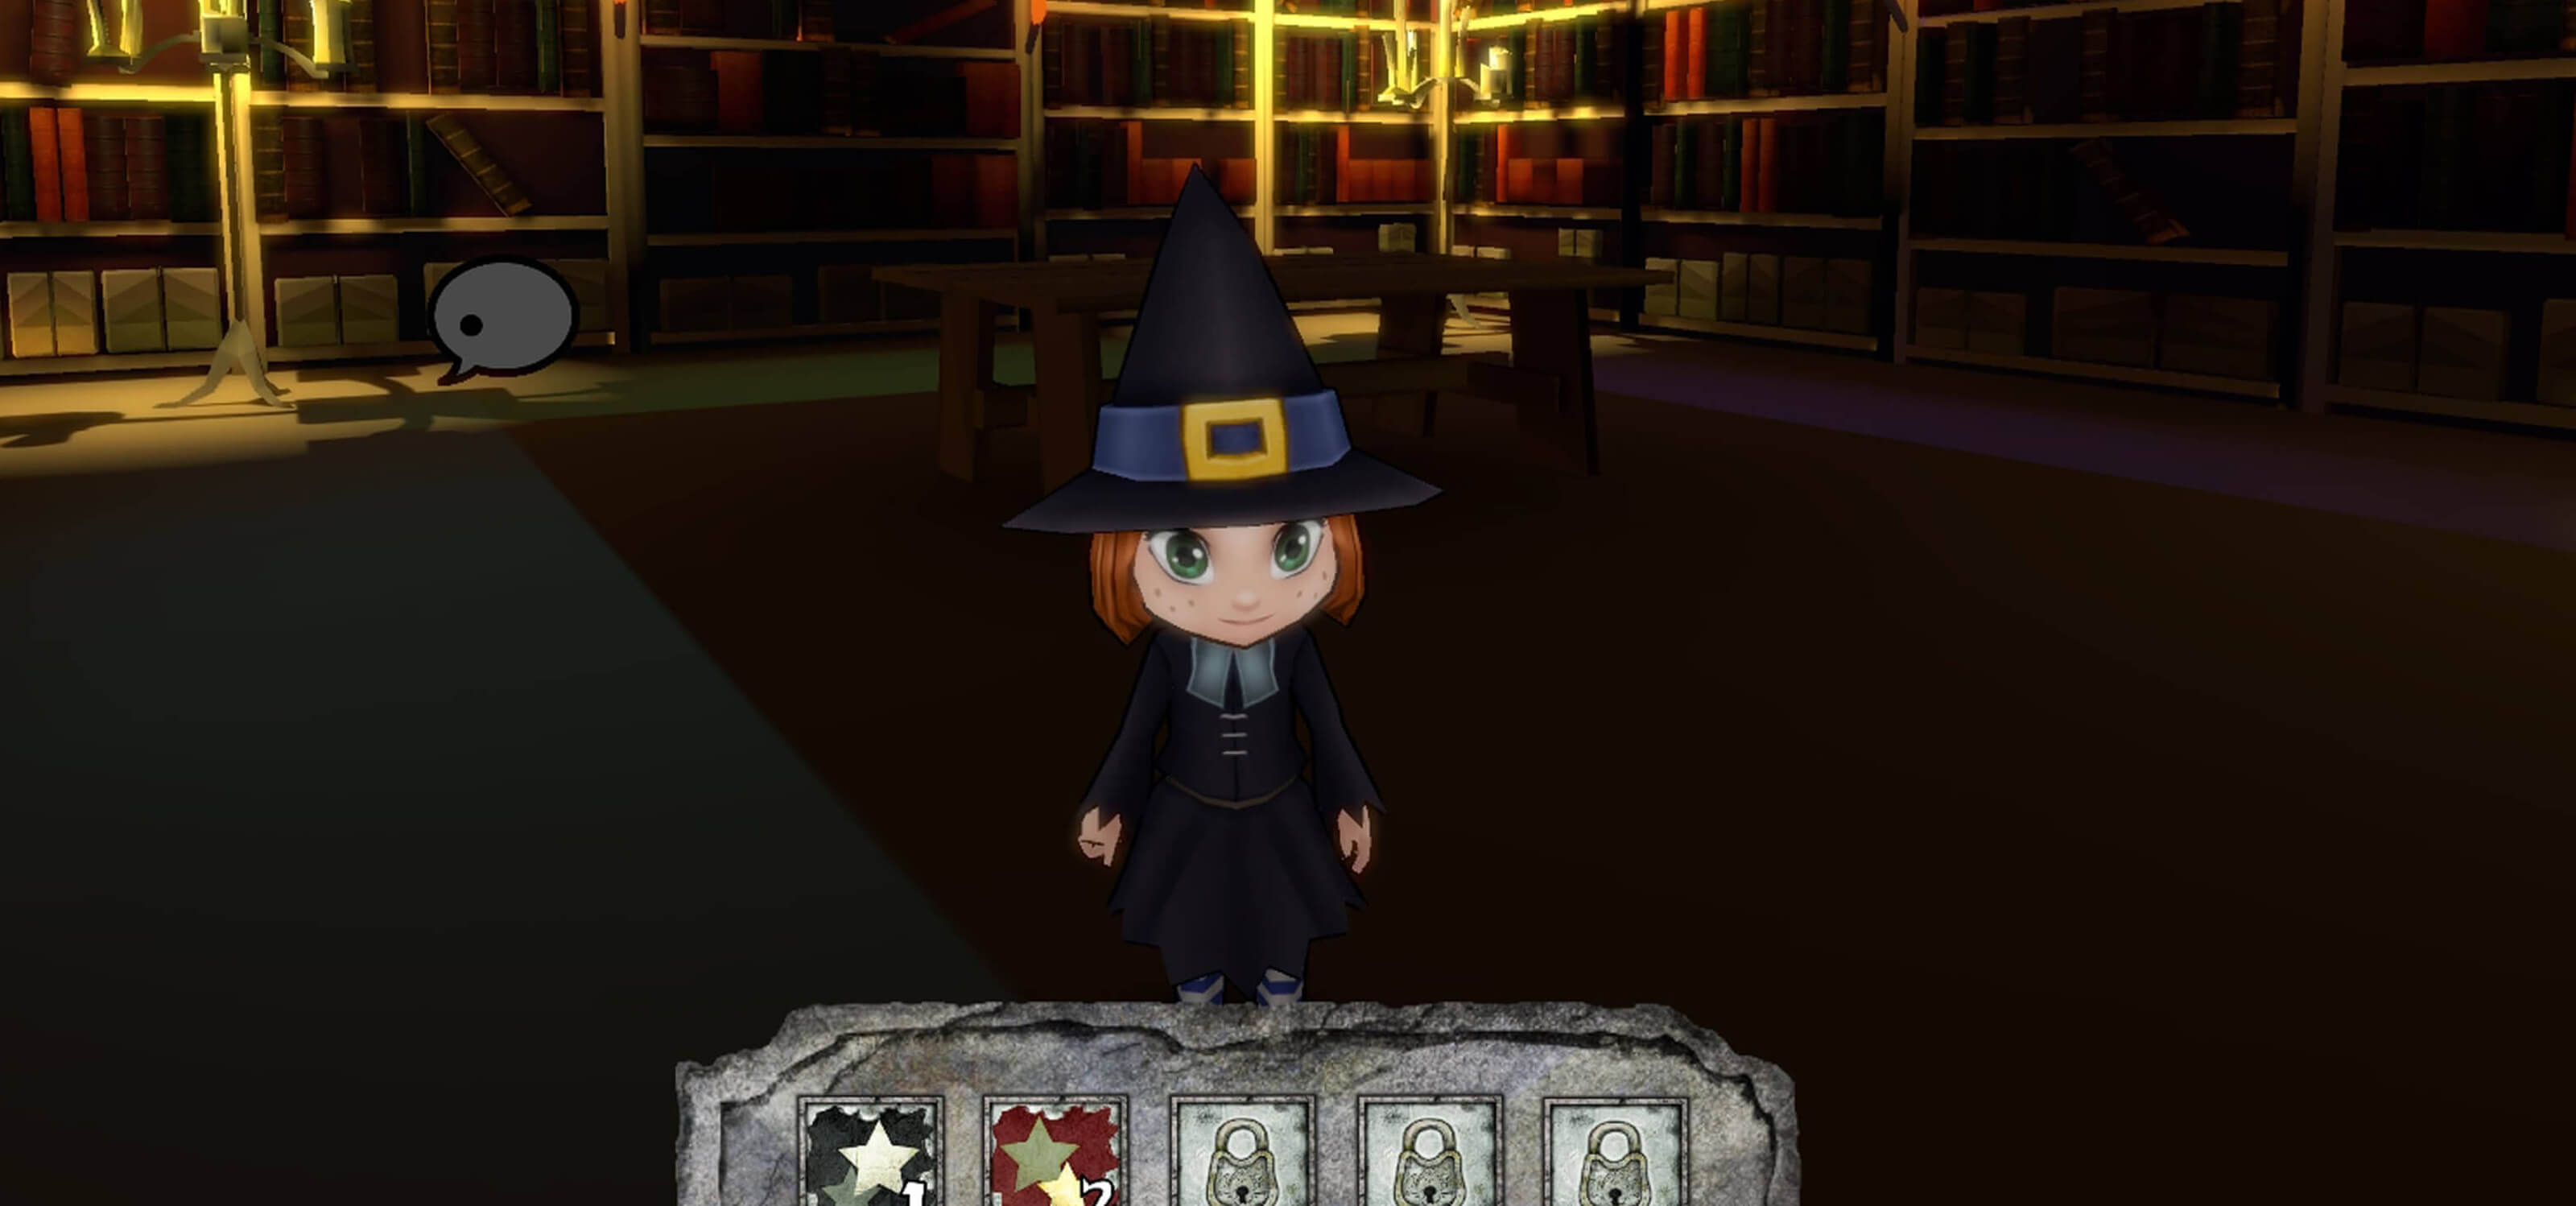 Screenshot of main game character Sorgina, a young witch's apprentice, in a darkened library